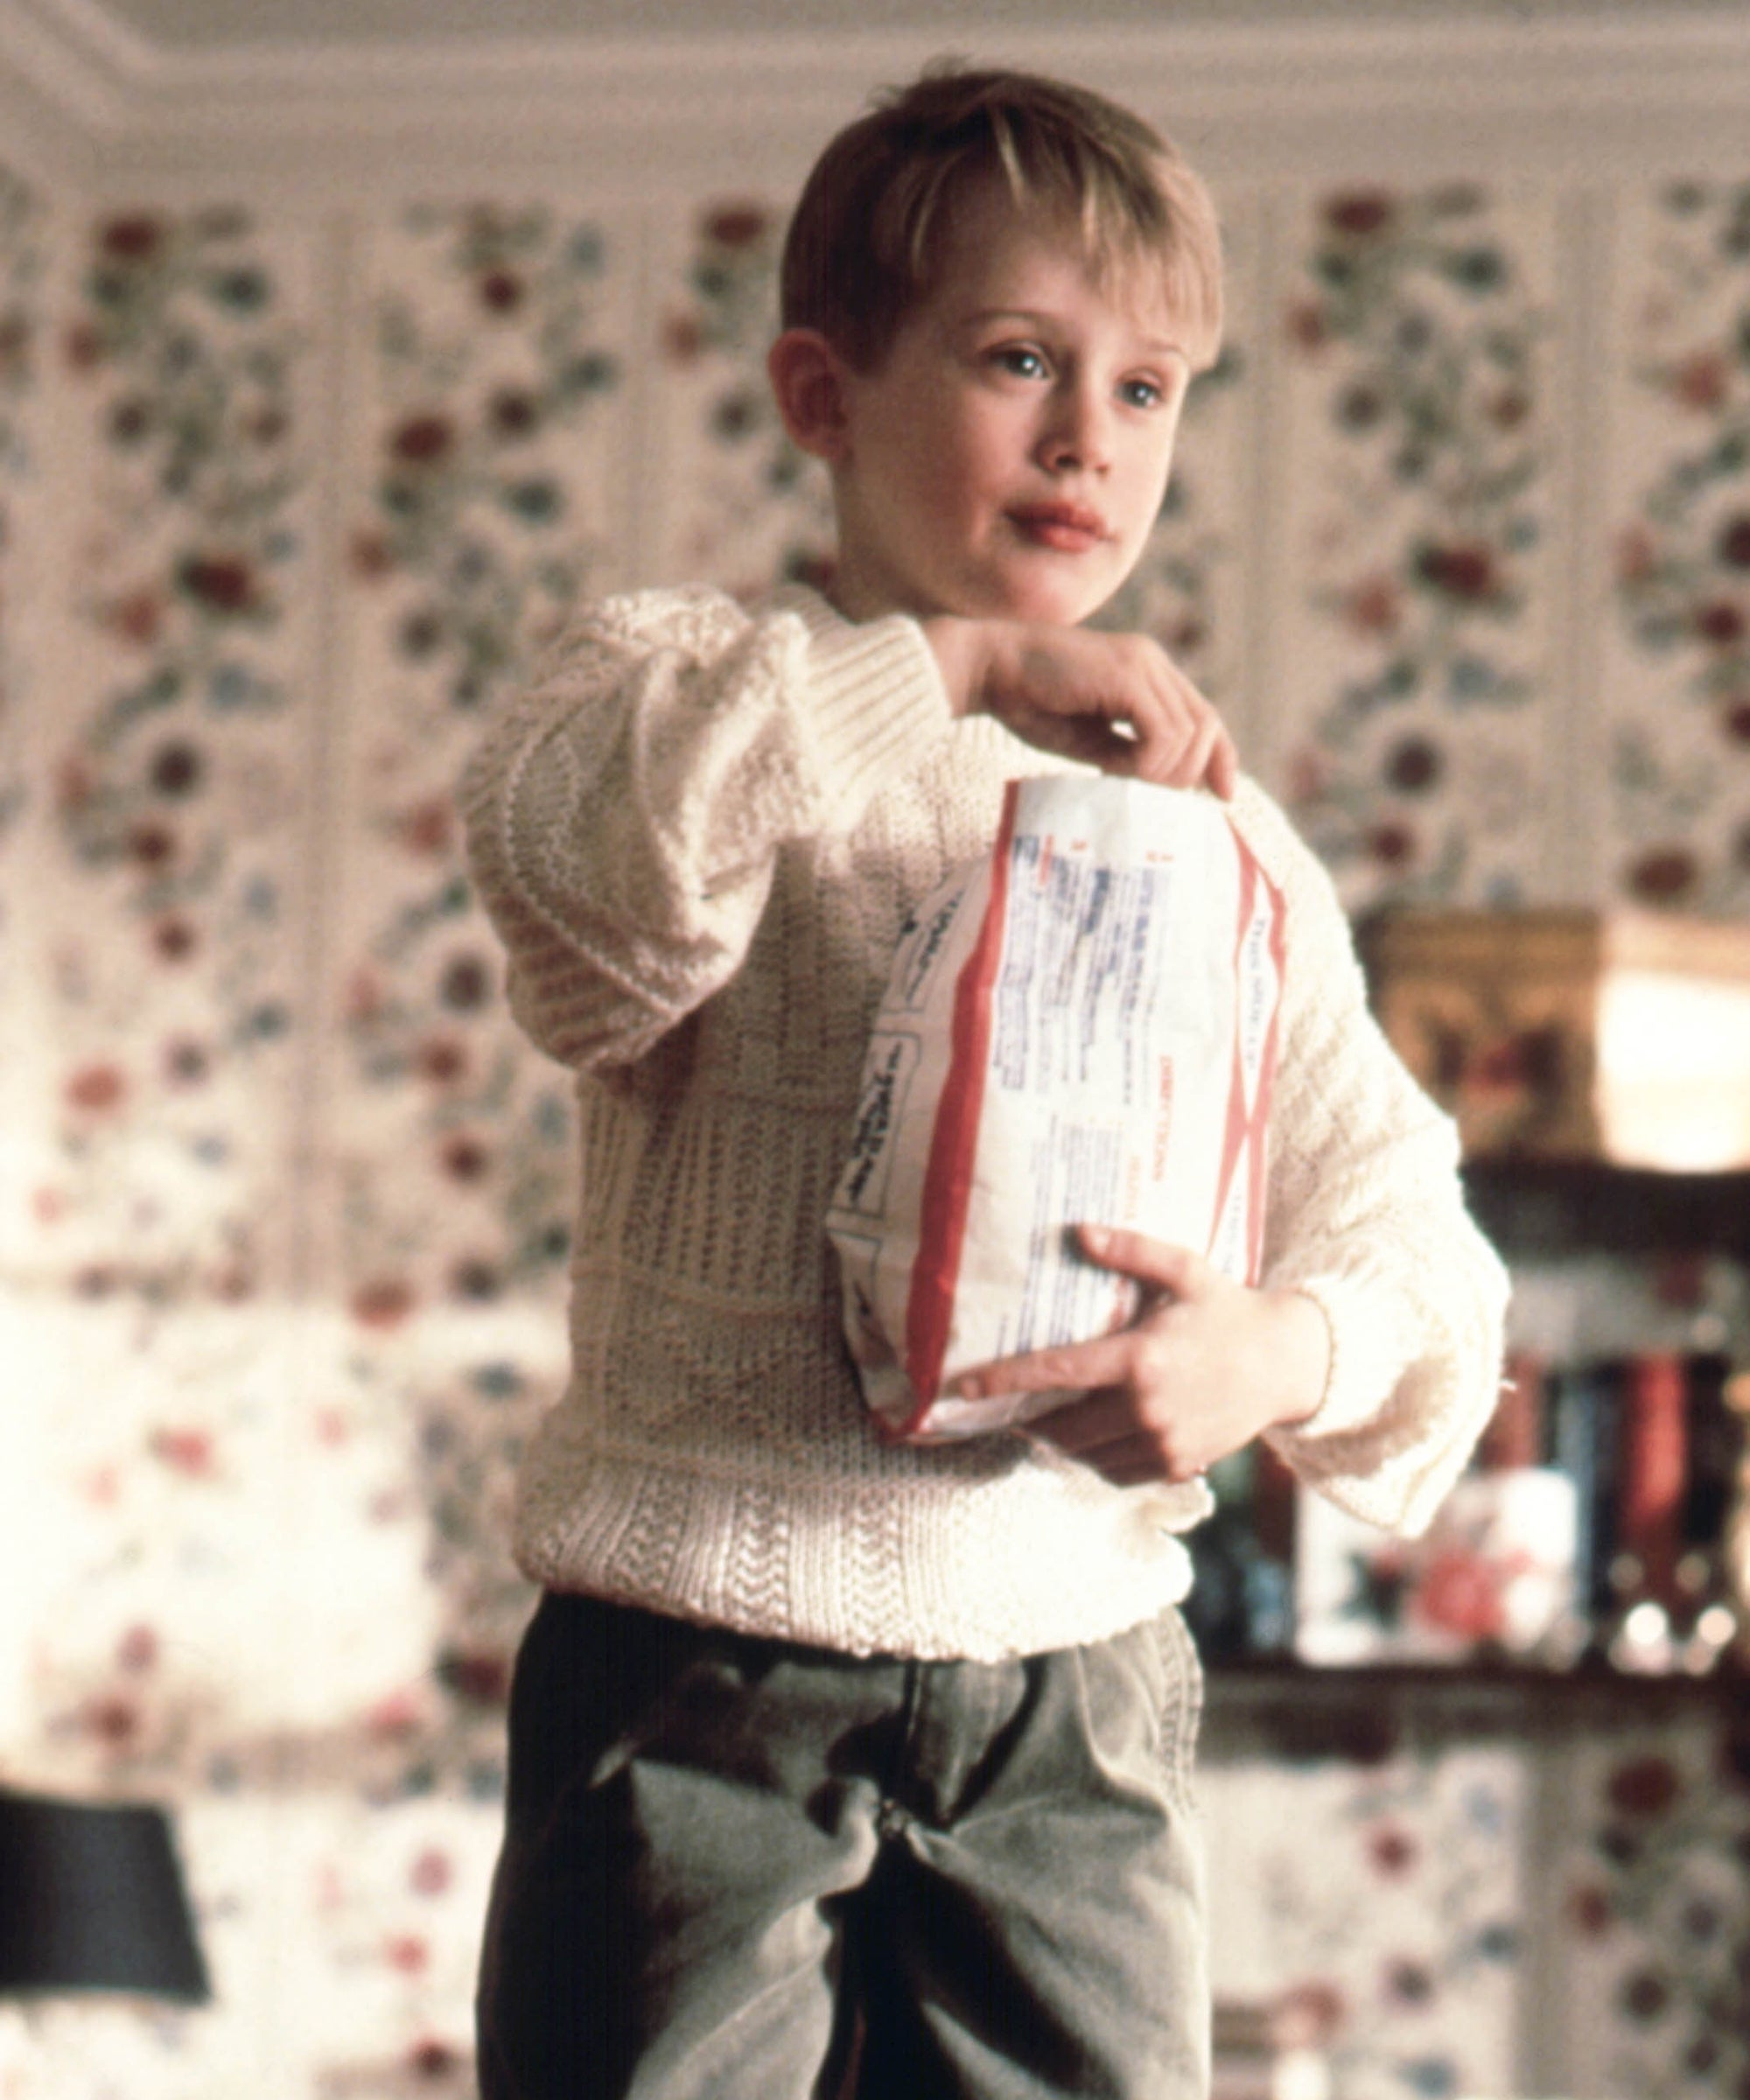 Meet The New Star Of The Home Alone Reboot